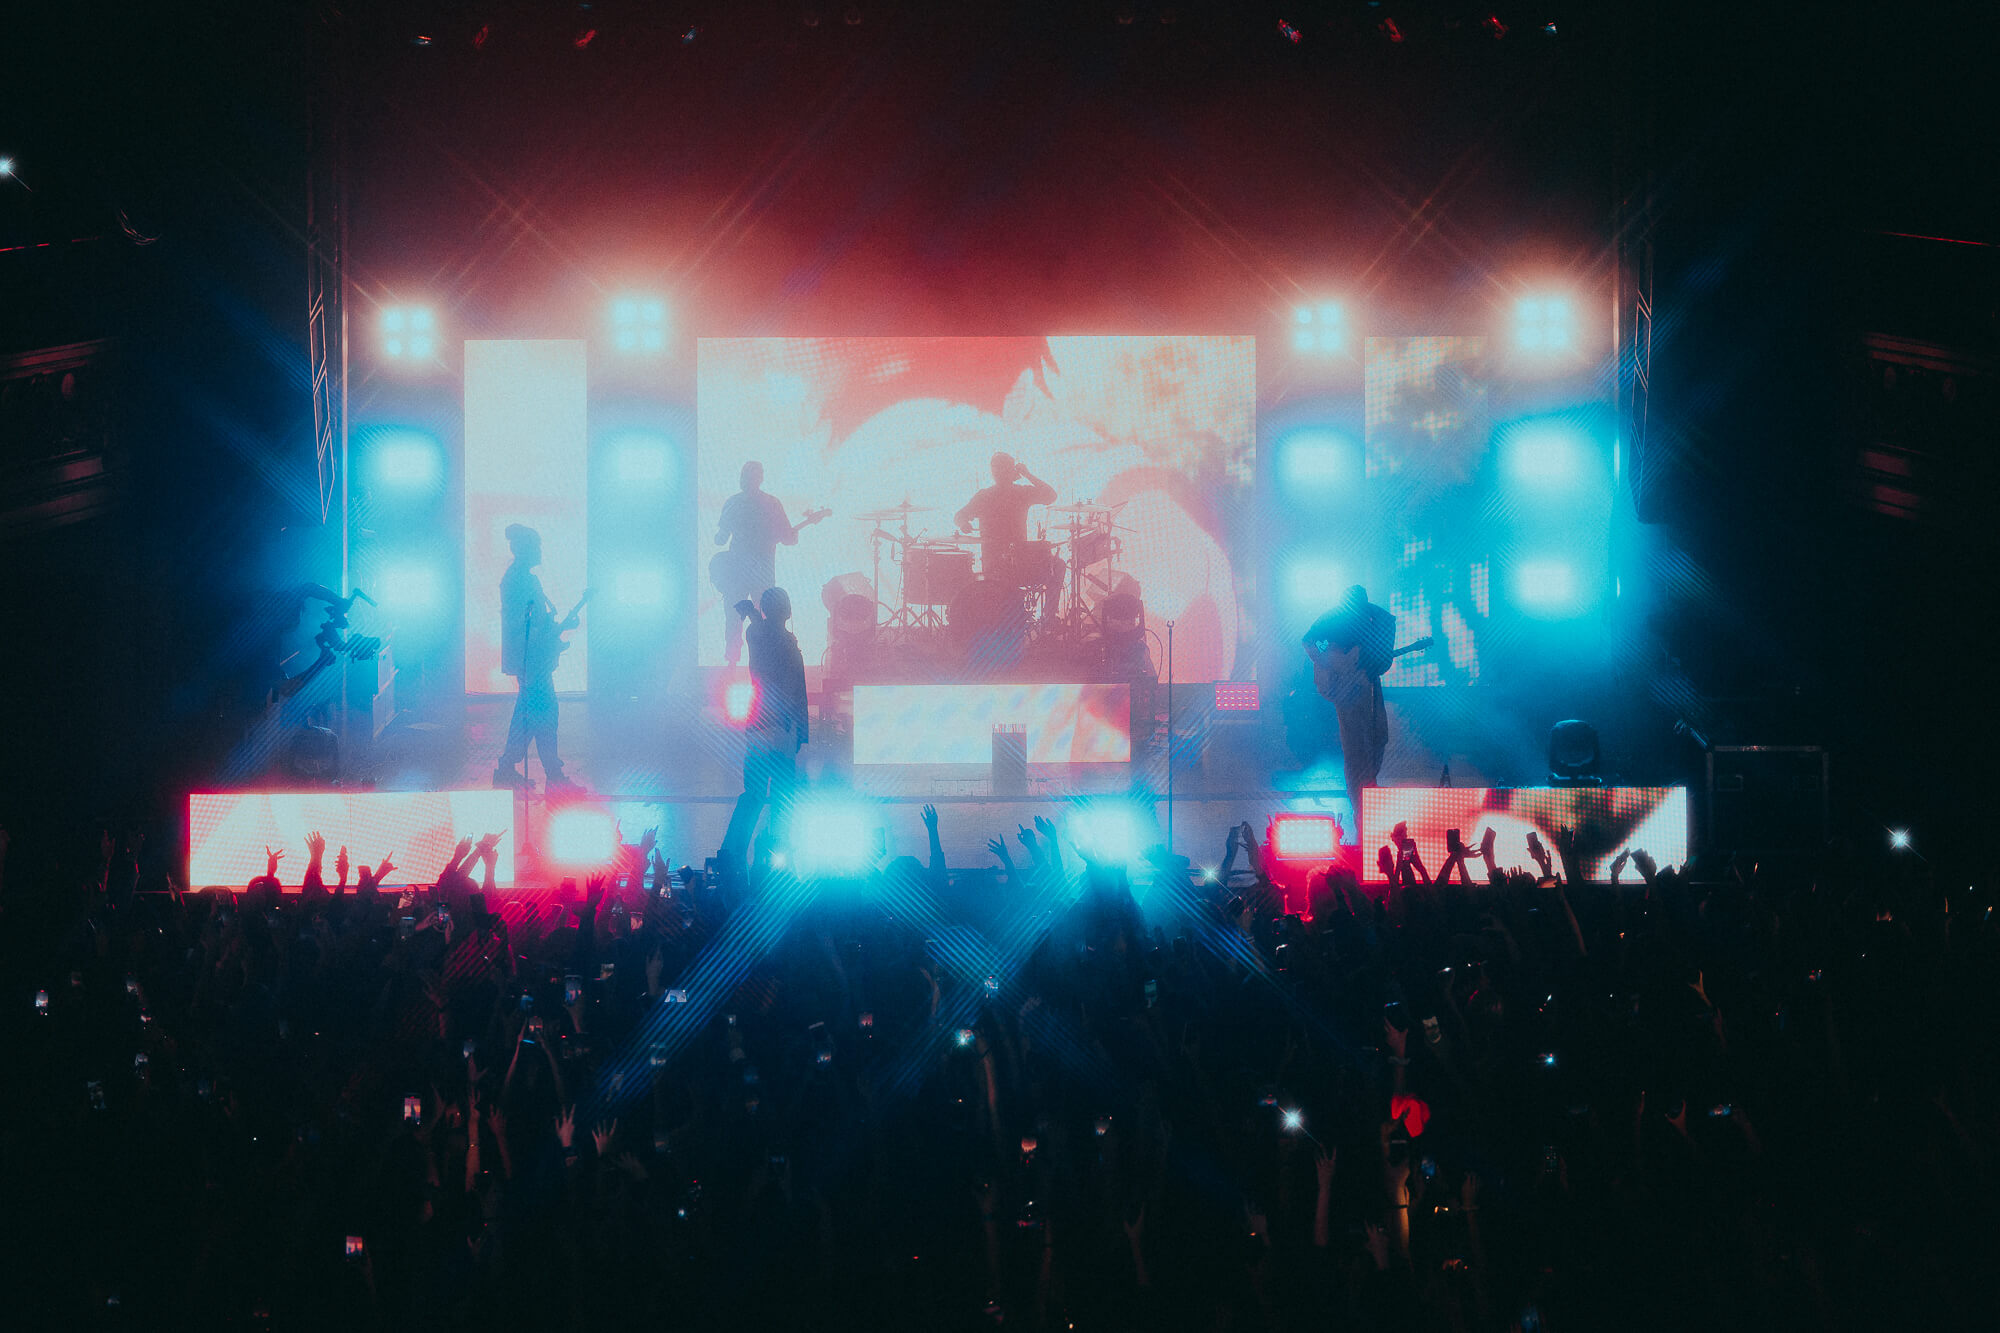 GALLERY: 'Beauty In Death Tour': Featuring Chase Atlantic, Niko Rubio – San Francisco, CA – 10.08.21